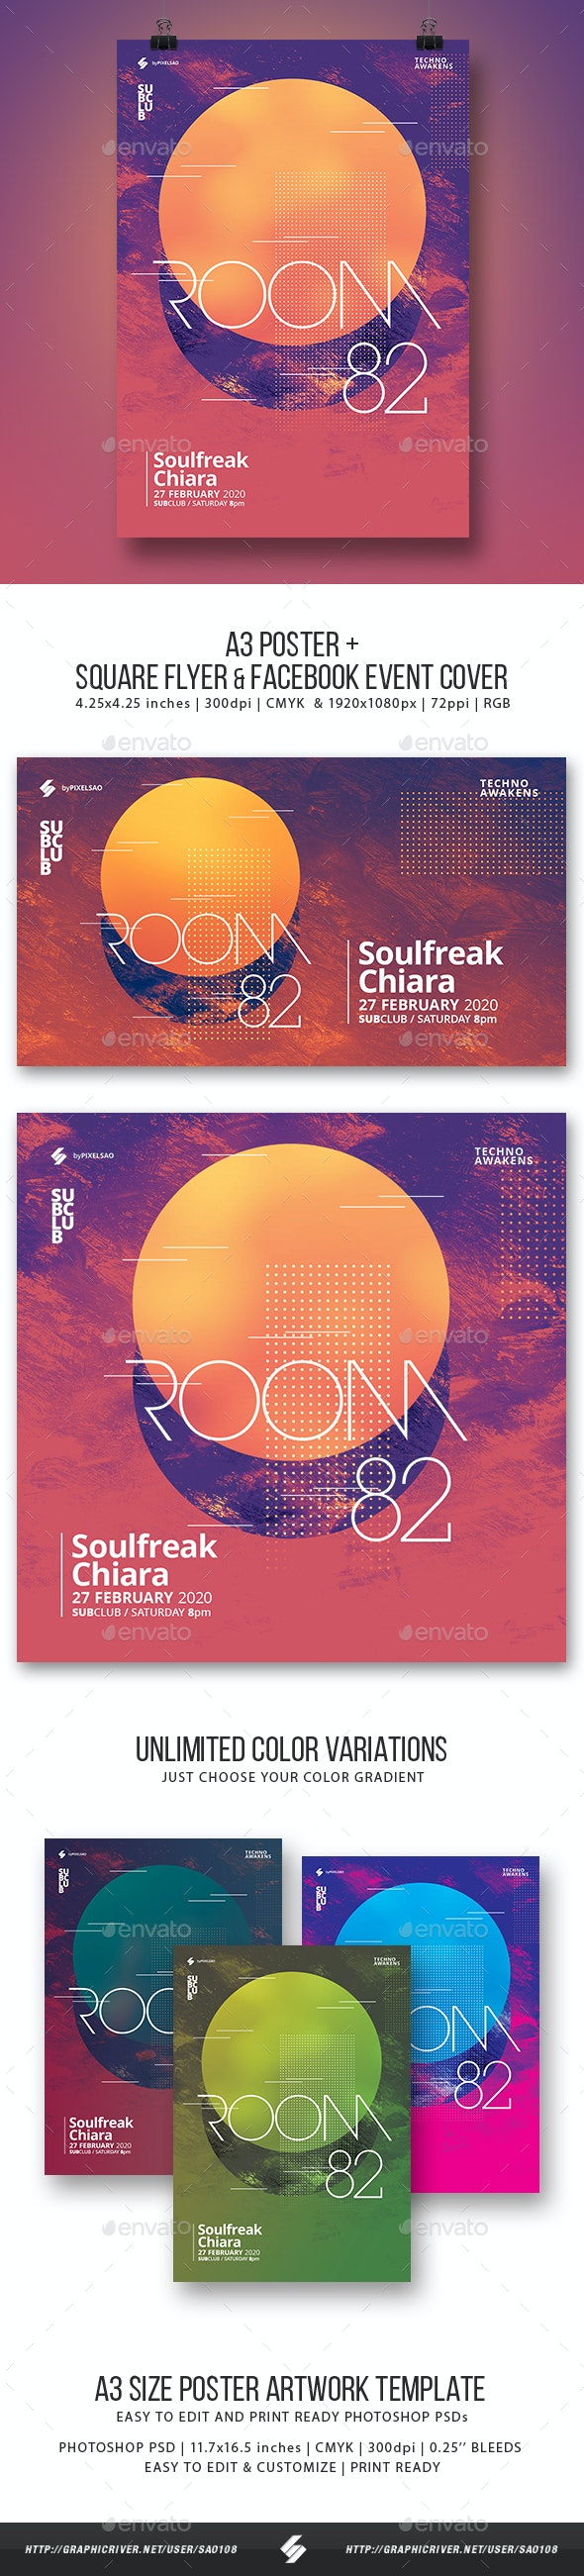 Room 82 - Minimal Party Flyer / Poster Artwork Template A3 - Clubs & Parties Events